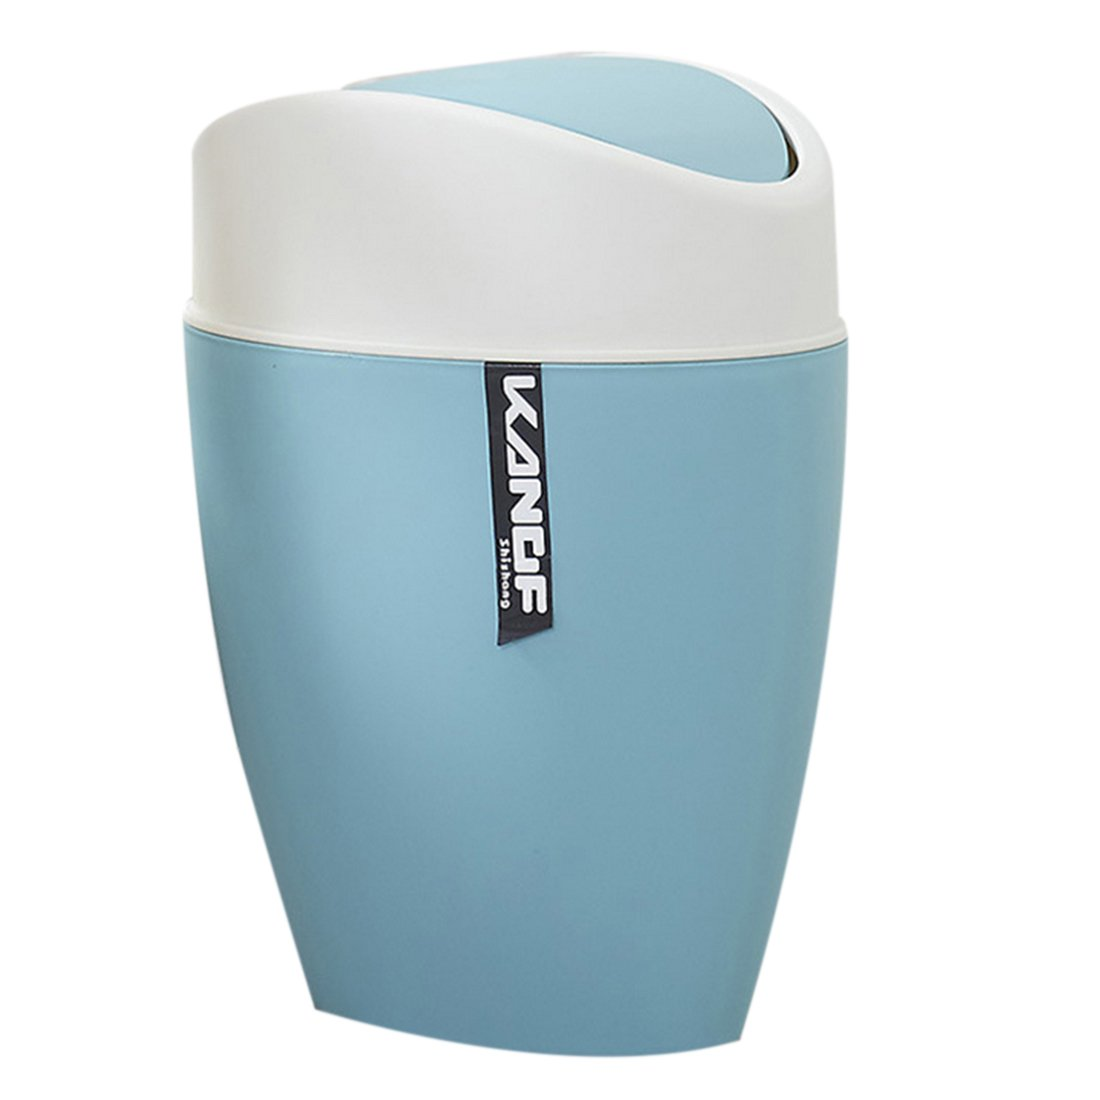 Amazon.com: Haoun PP Plastic Trash Can with Swing Lid for Office ...